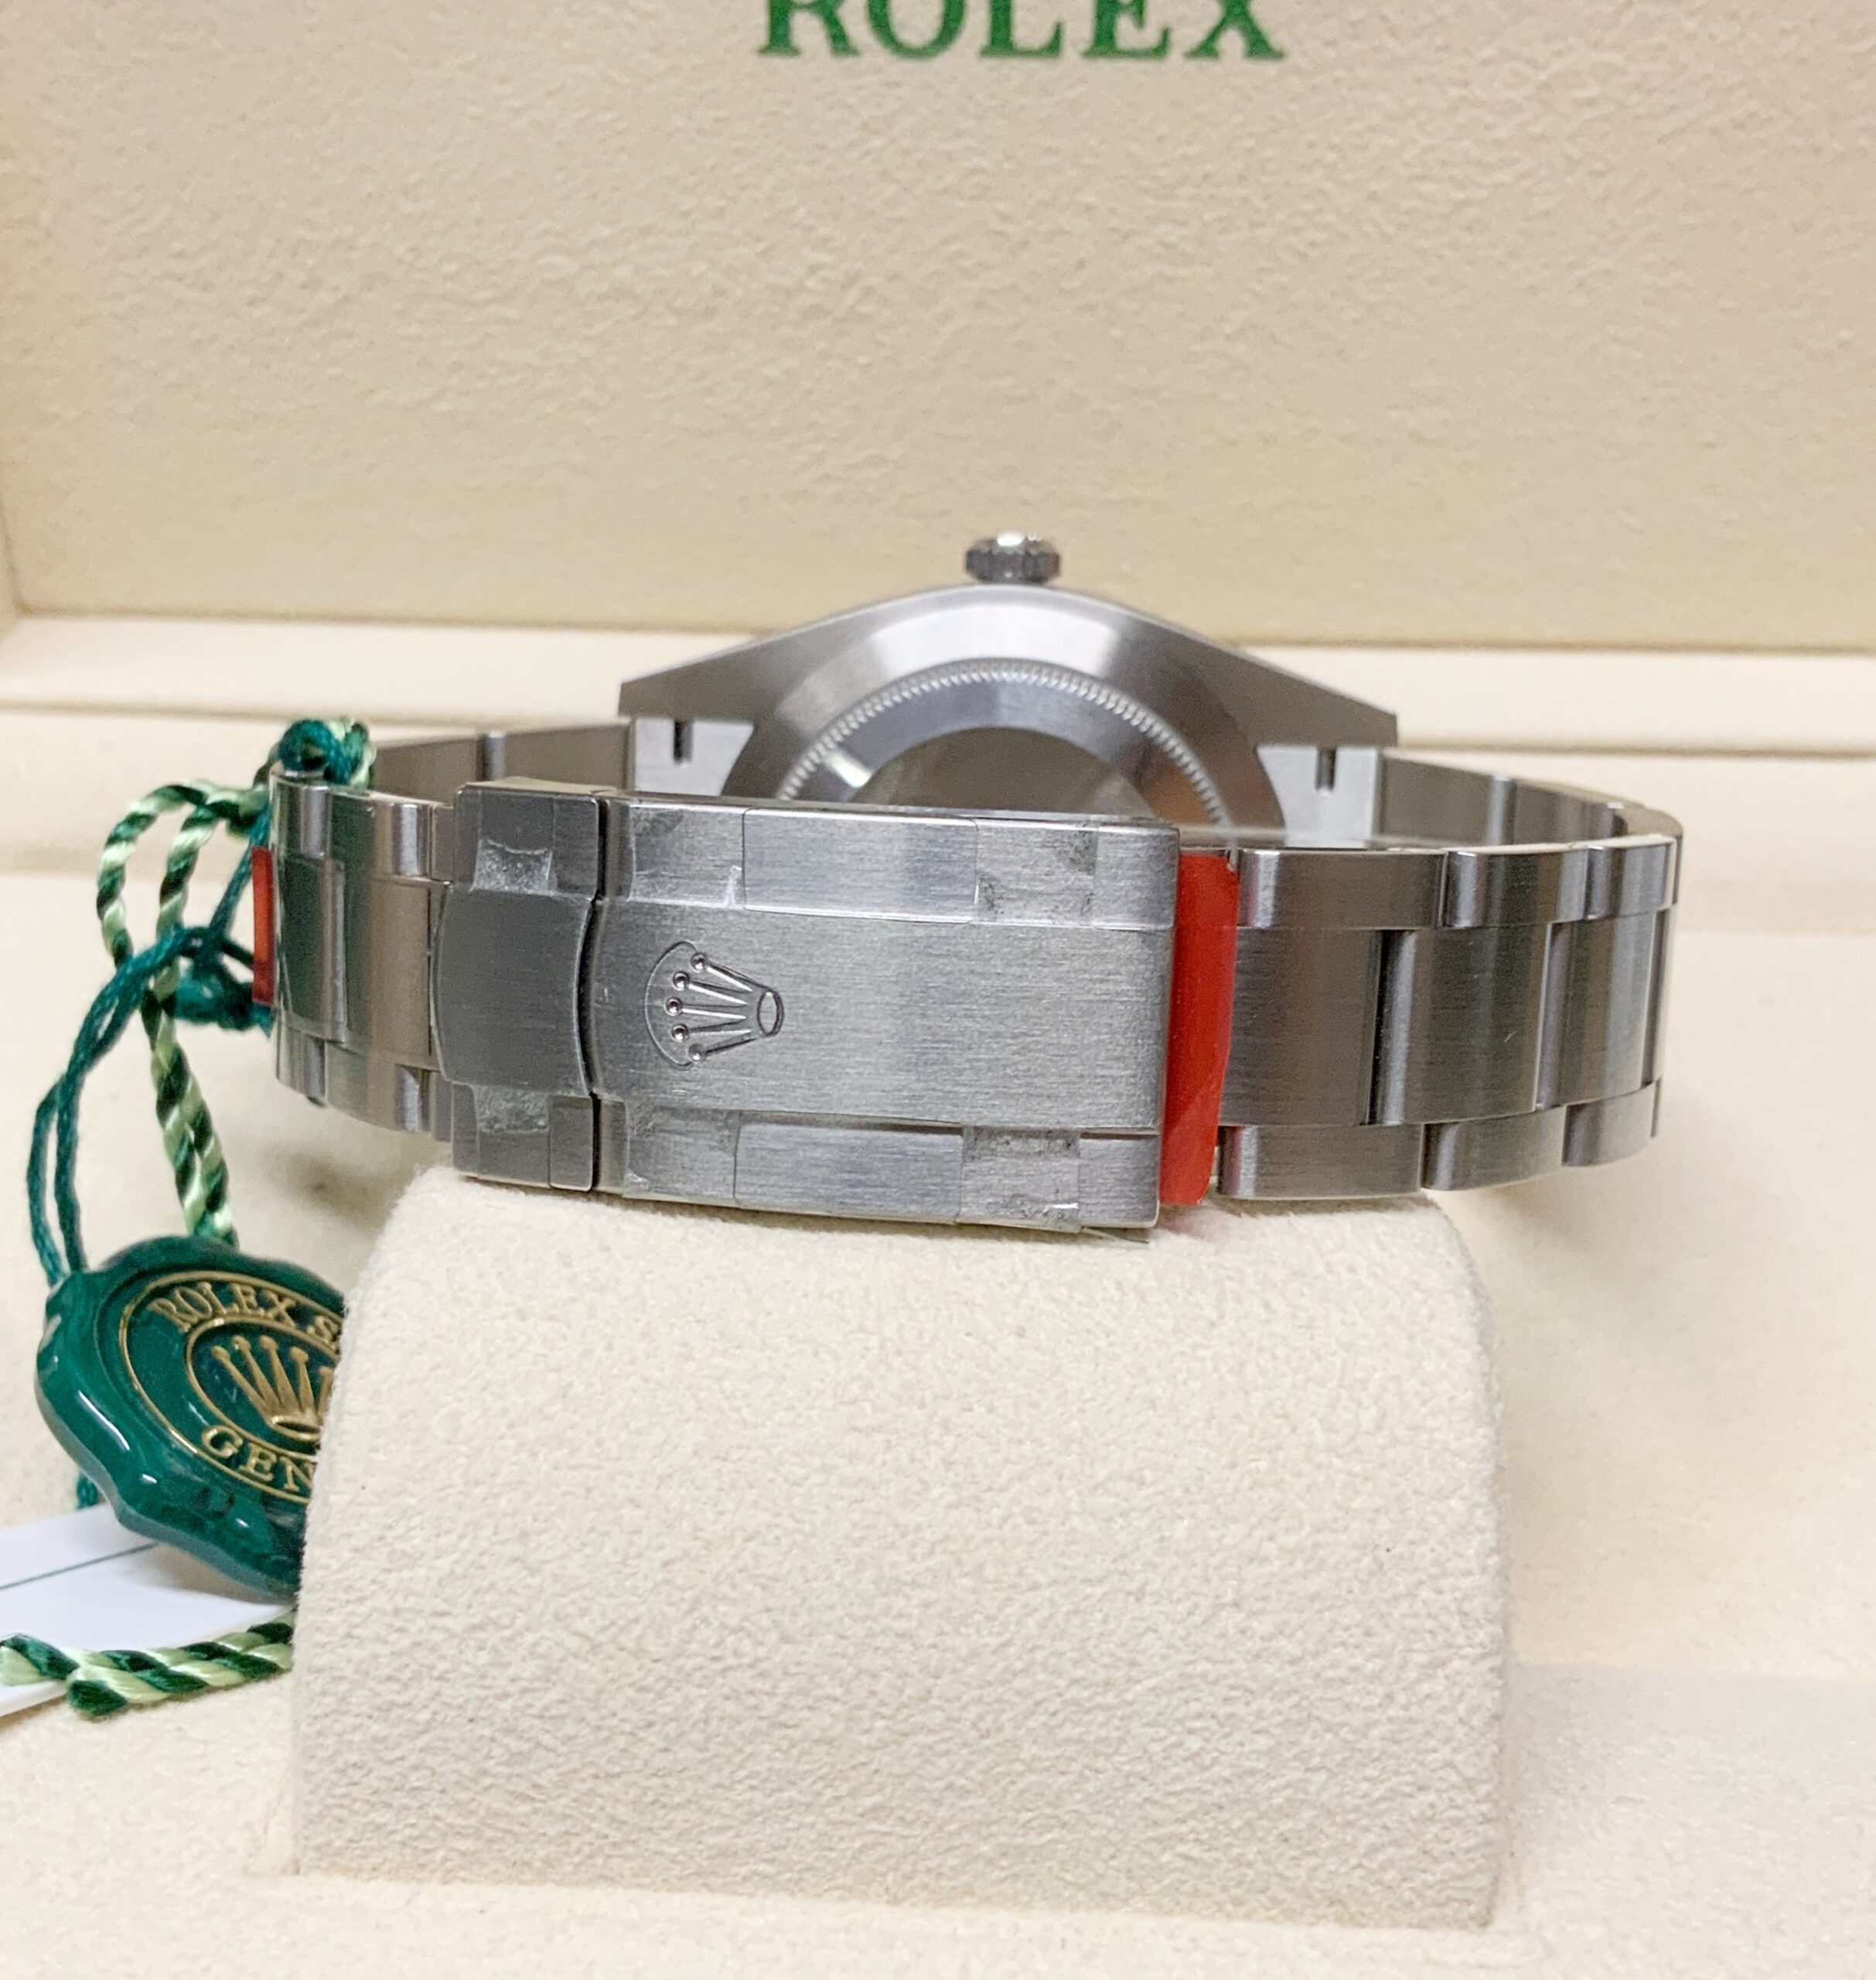 Rolex replica oyster perpetual 41mm 124300 green dial my2020